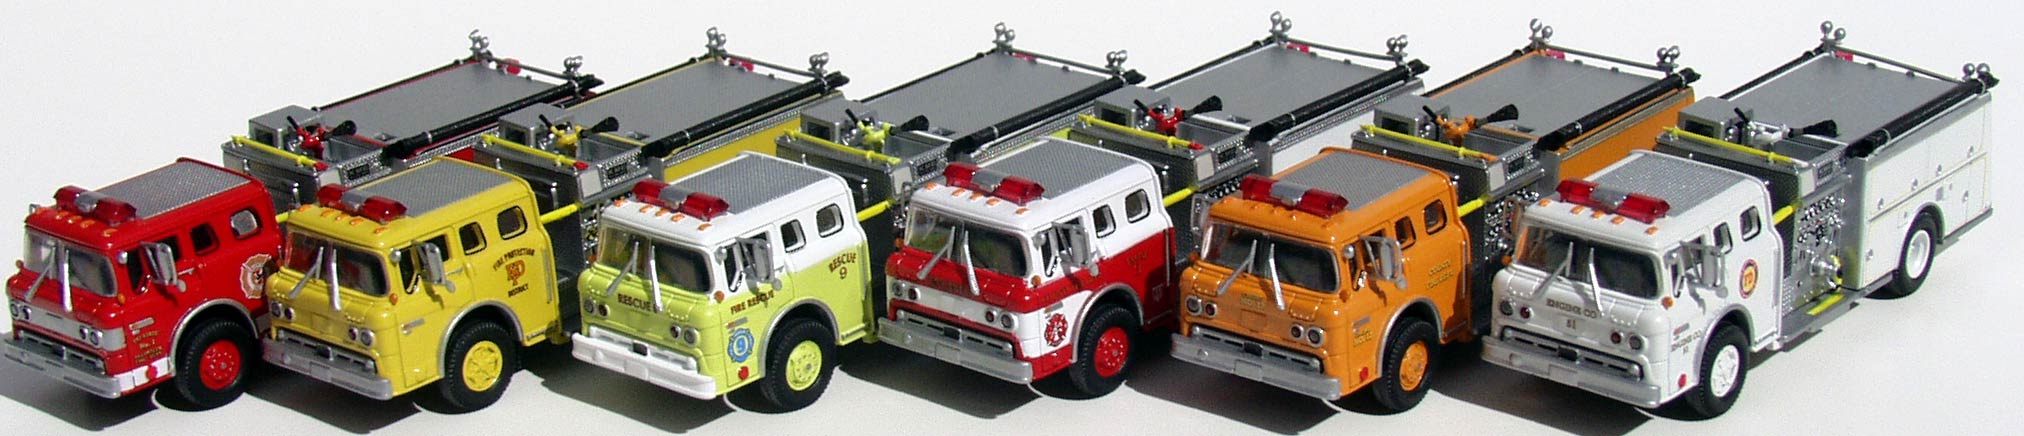 Our own bill cawthon s review of this fire truck is available on the promotex online web site